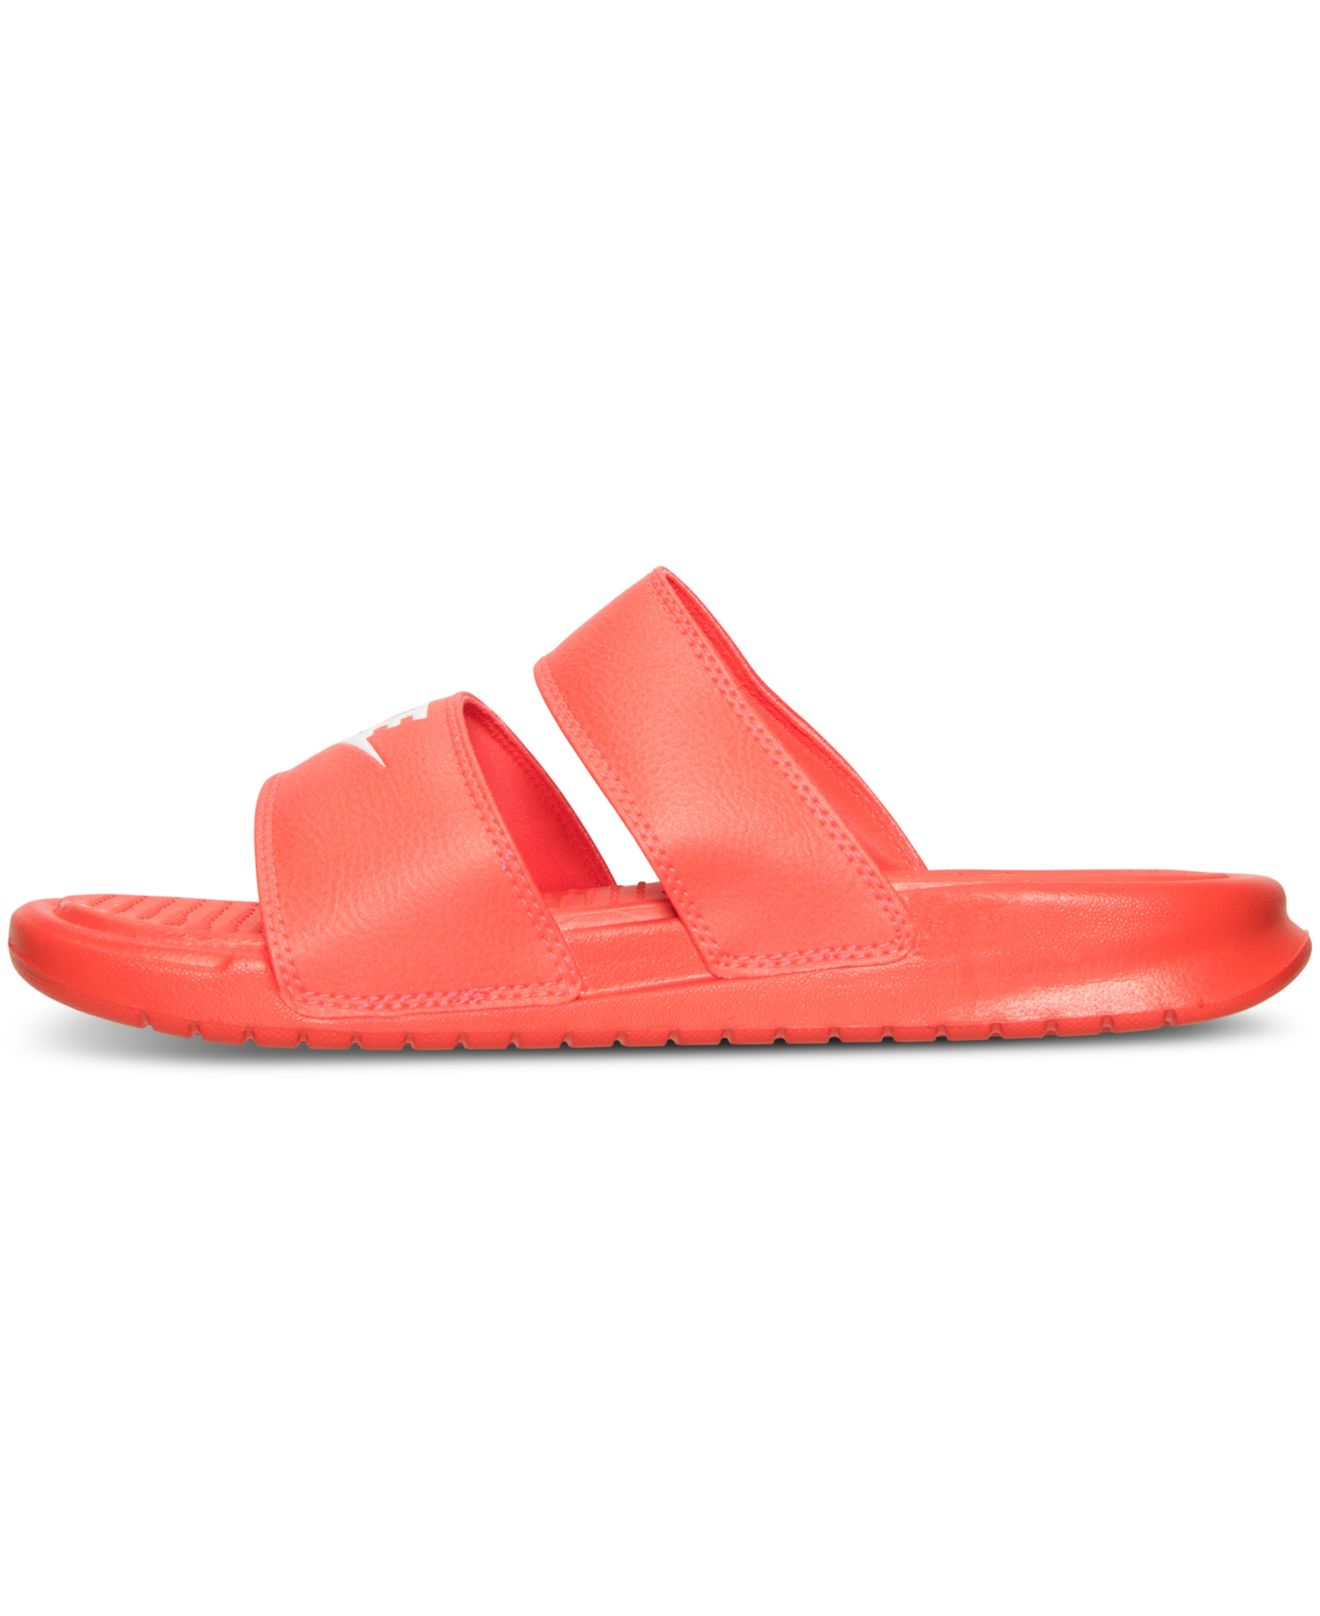 ad01214607ed ... hot lyst nike womens benassi duo ultra slide sandals from finish line  60575 e64c6